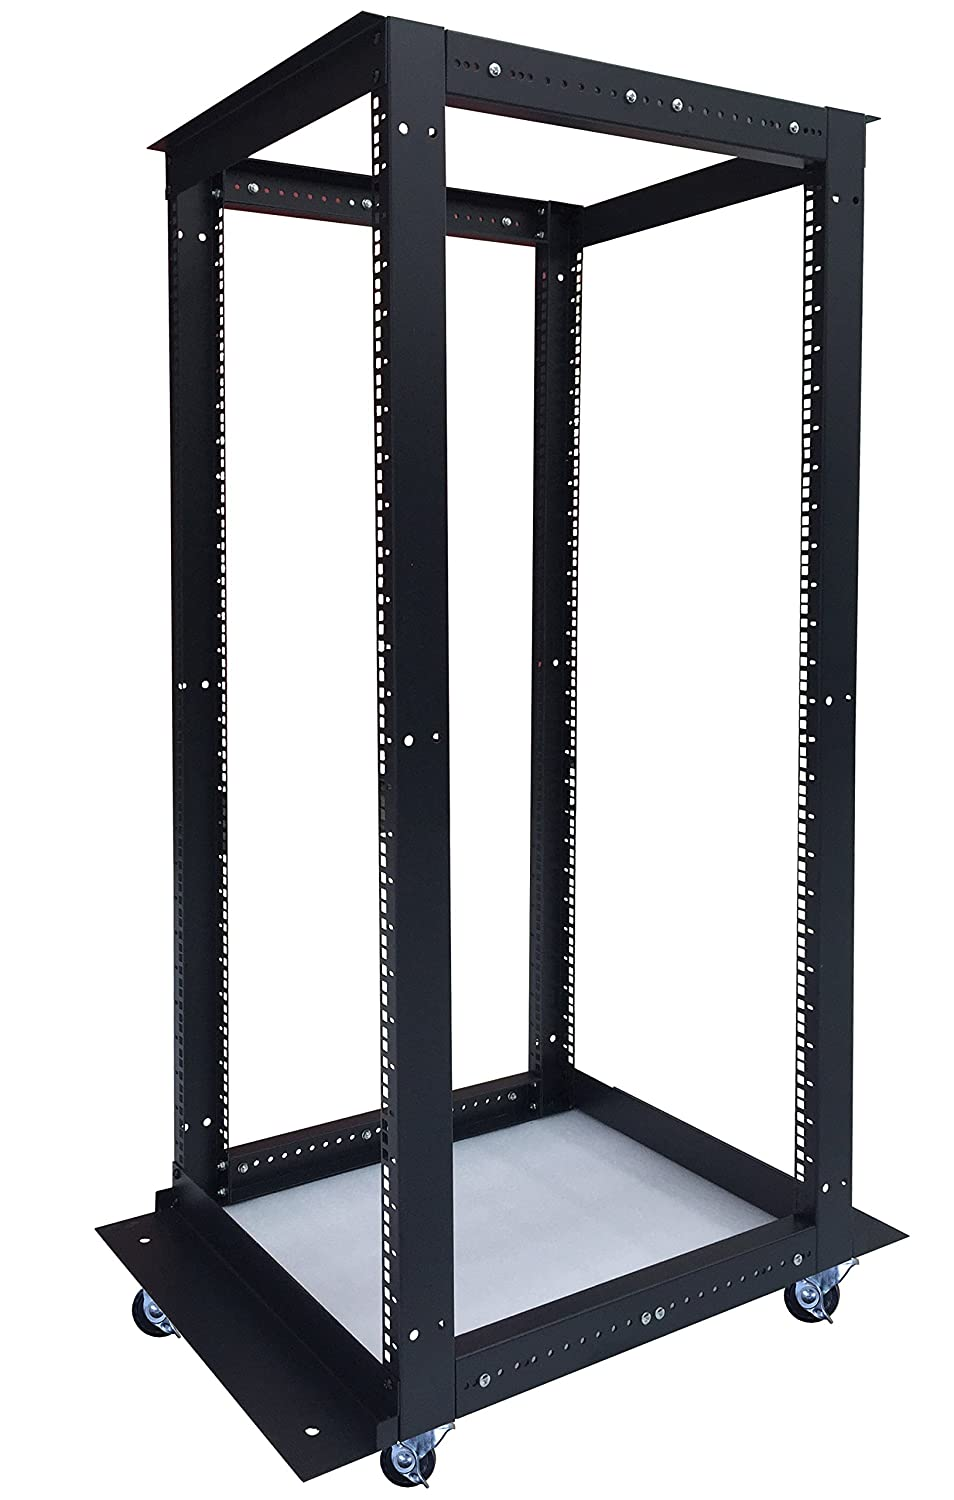 32U 4 Post Open Frame 19' Network Server Rack Cabinet Adjustable Depth 24'-37' Sysracks 32U DOR